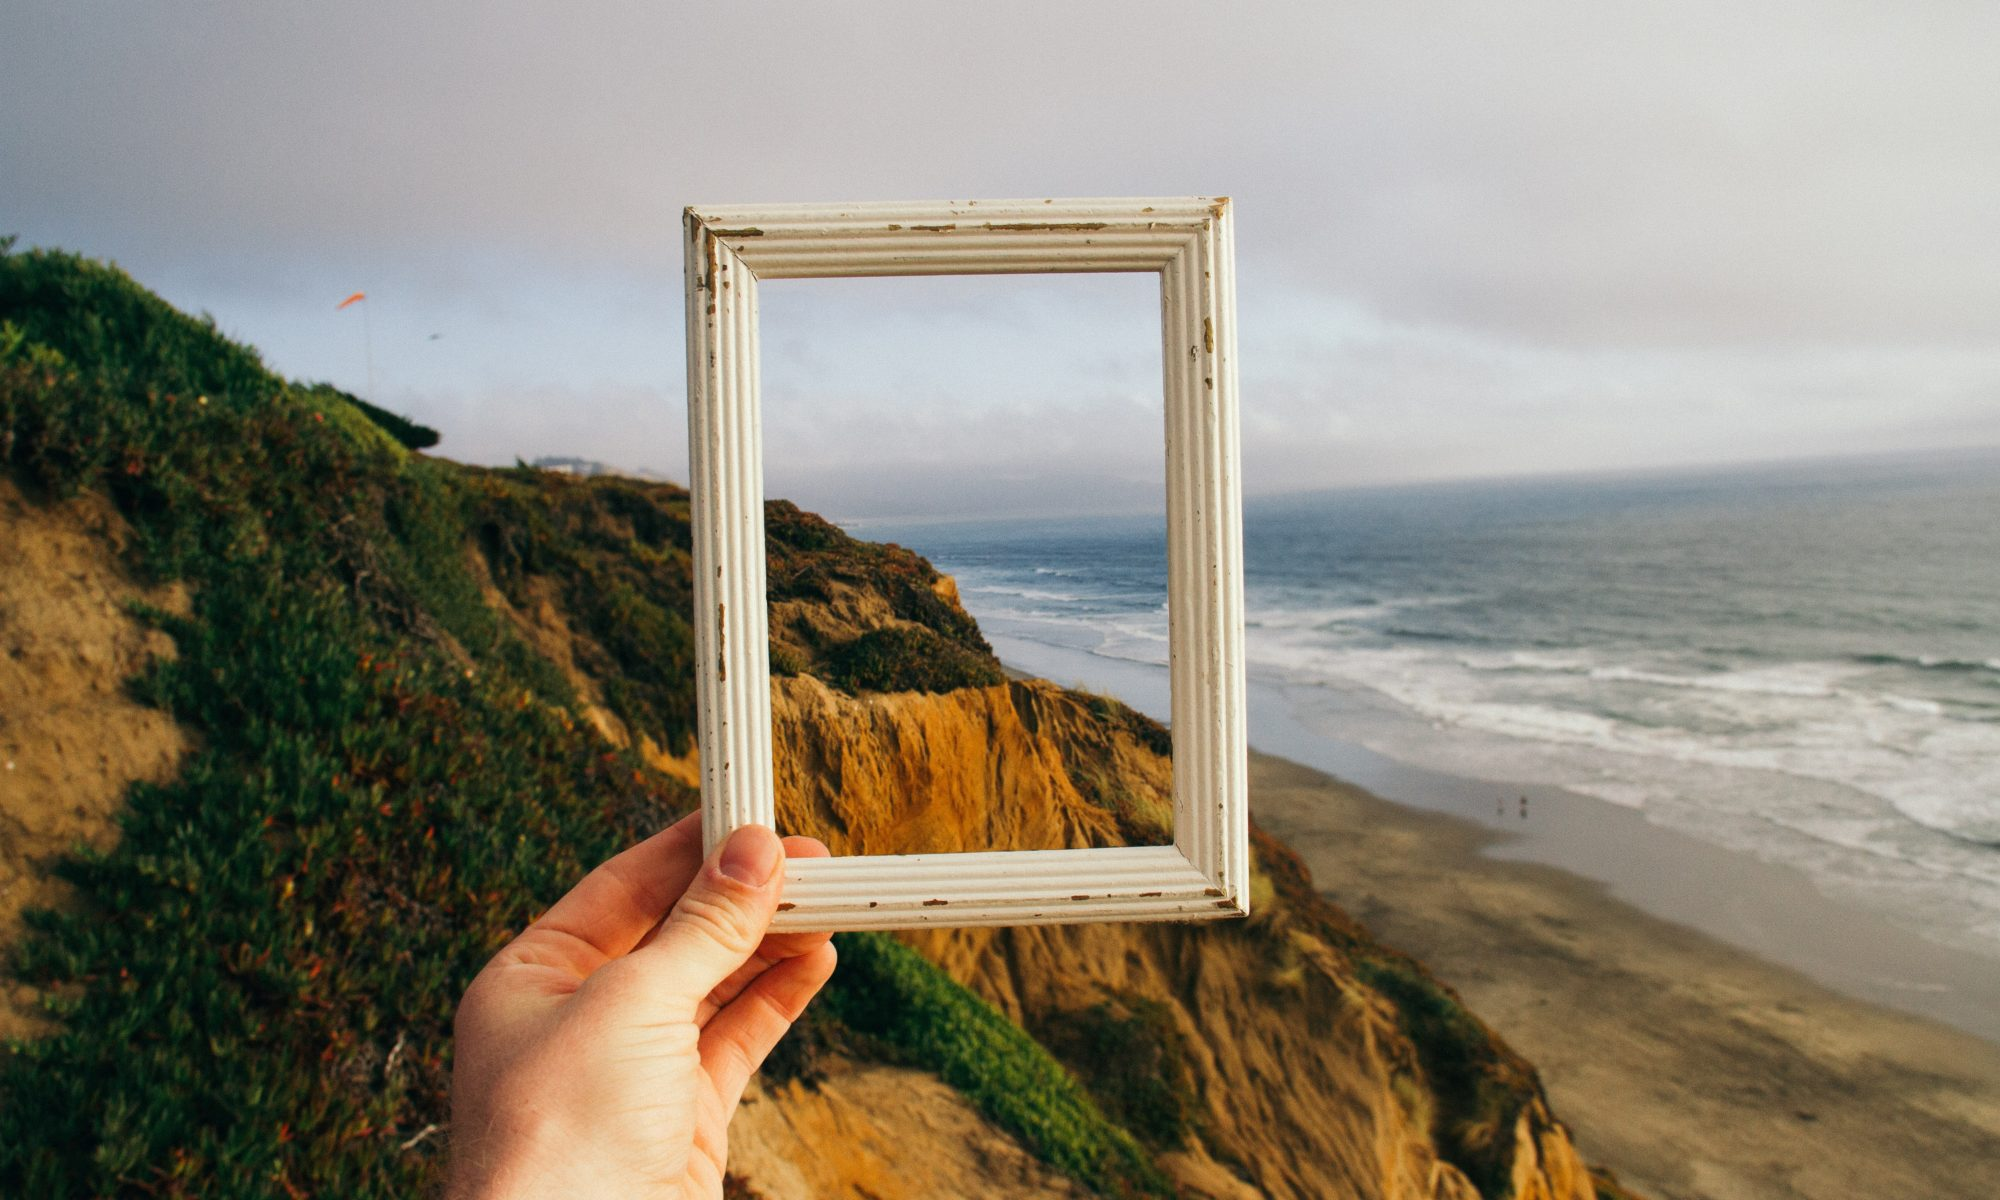 Picture of a empty frame. Sea shore landscape in the background